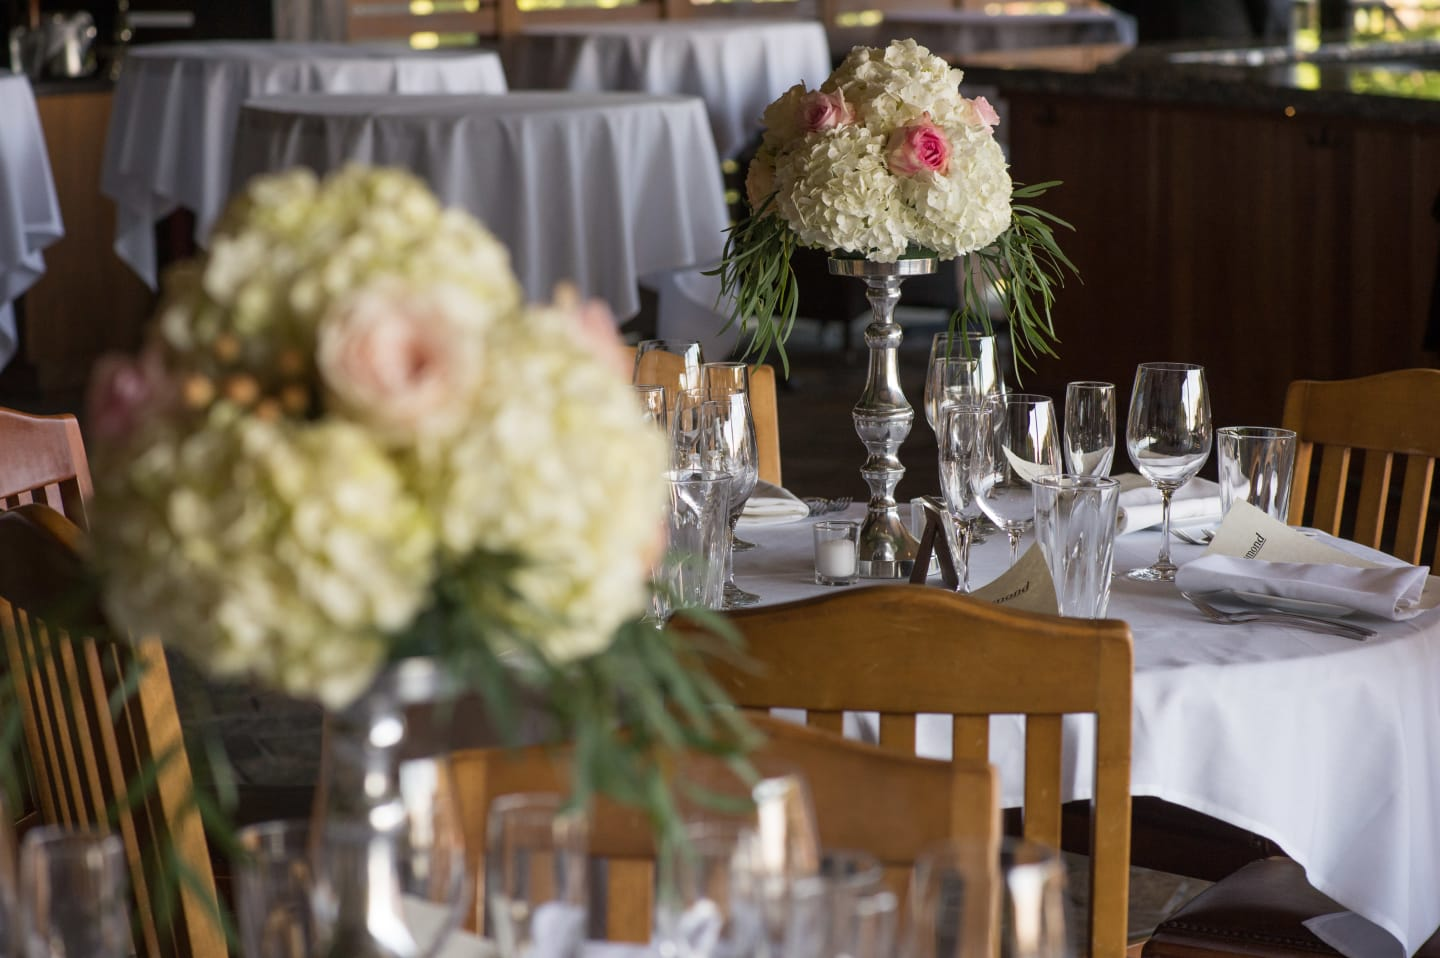 Events at The ChopHouse